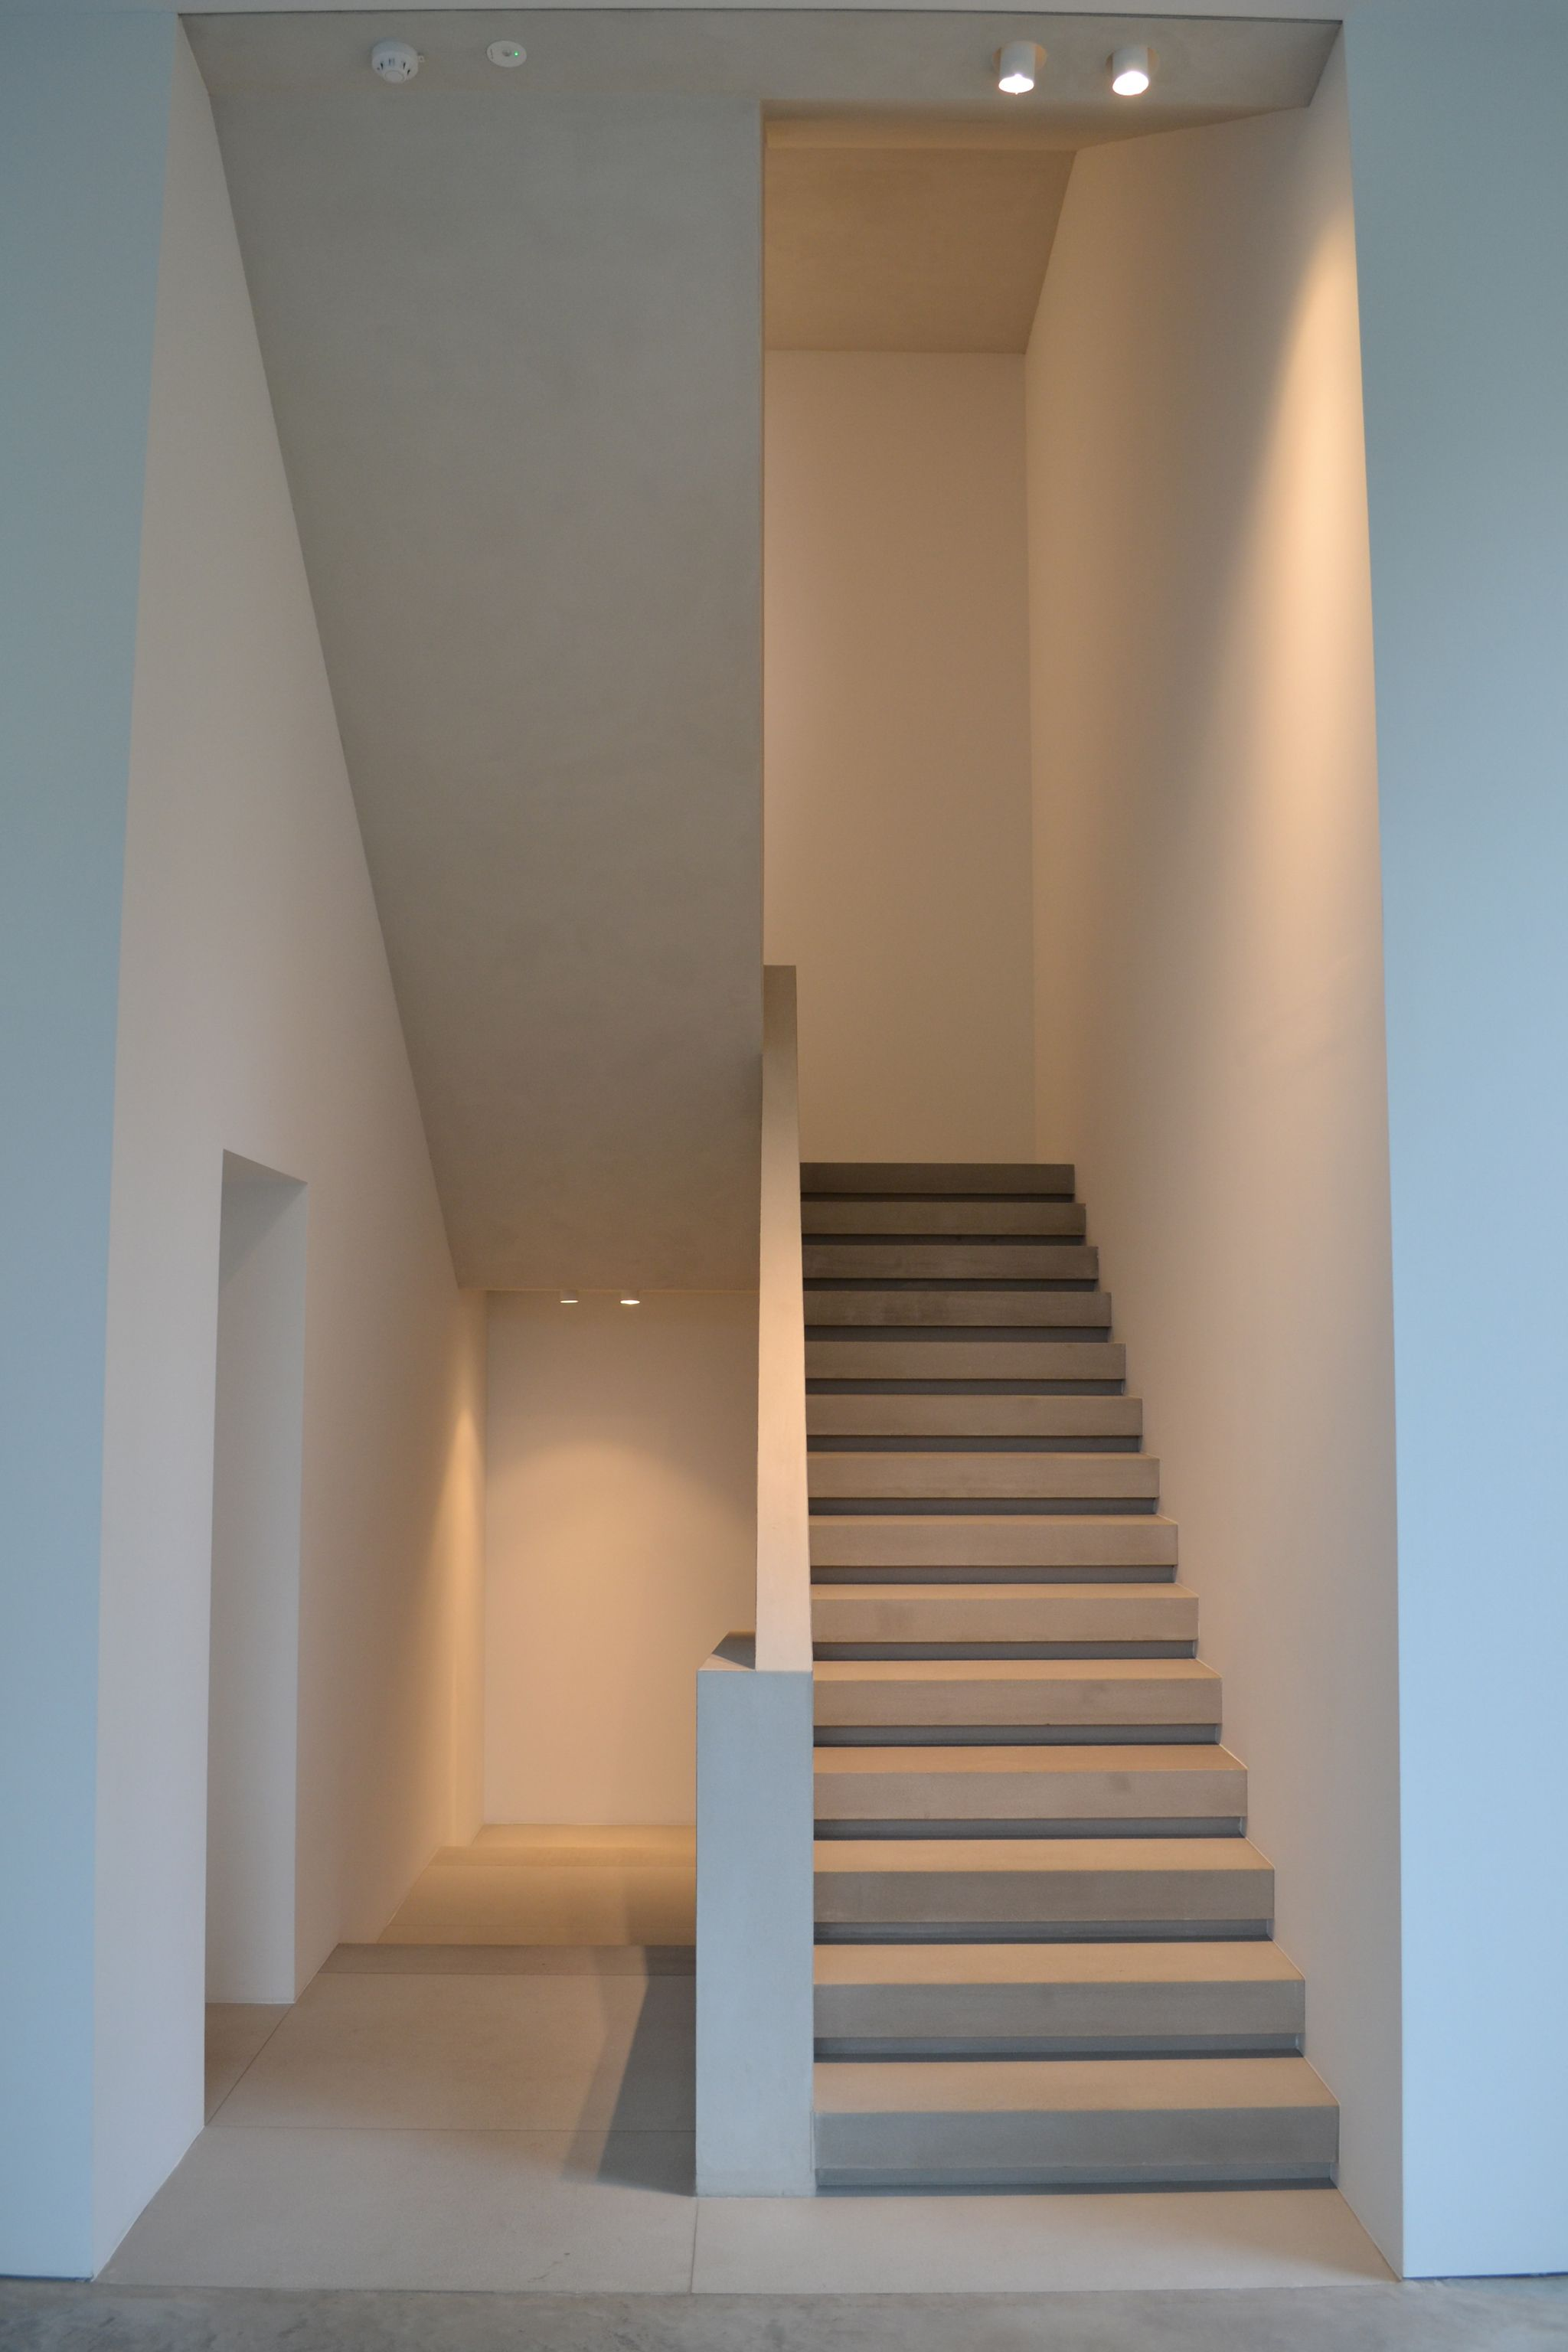 Best Stairs Gallery Lannoo In Ghent By Glenn Sestig 640 x 480